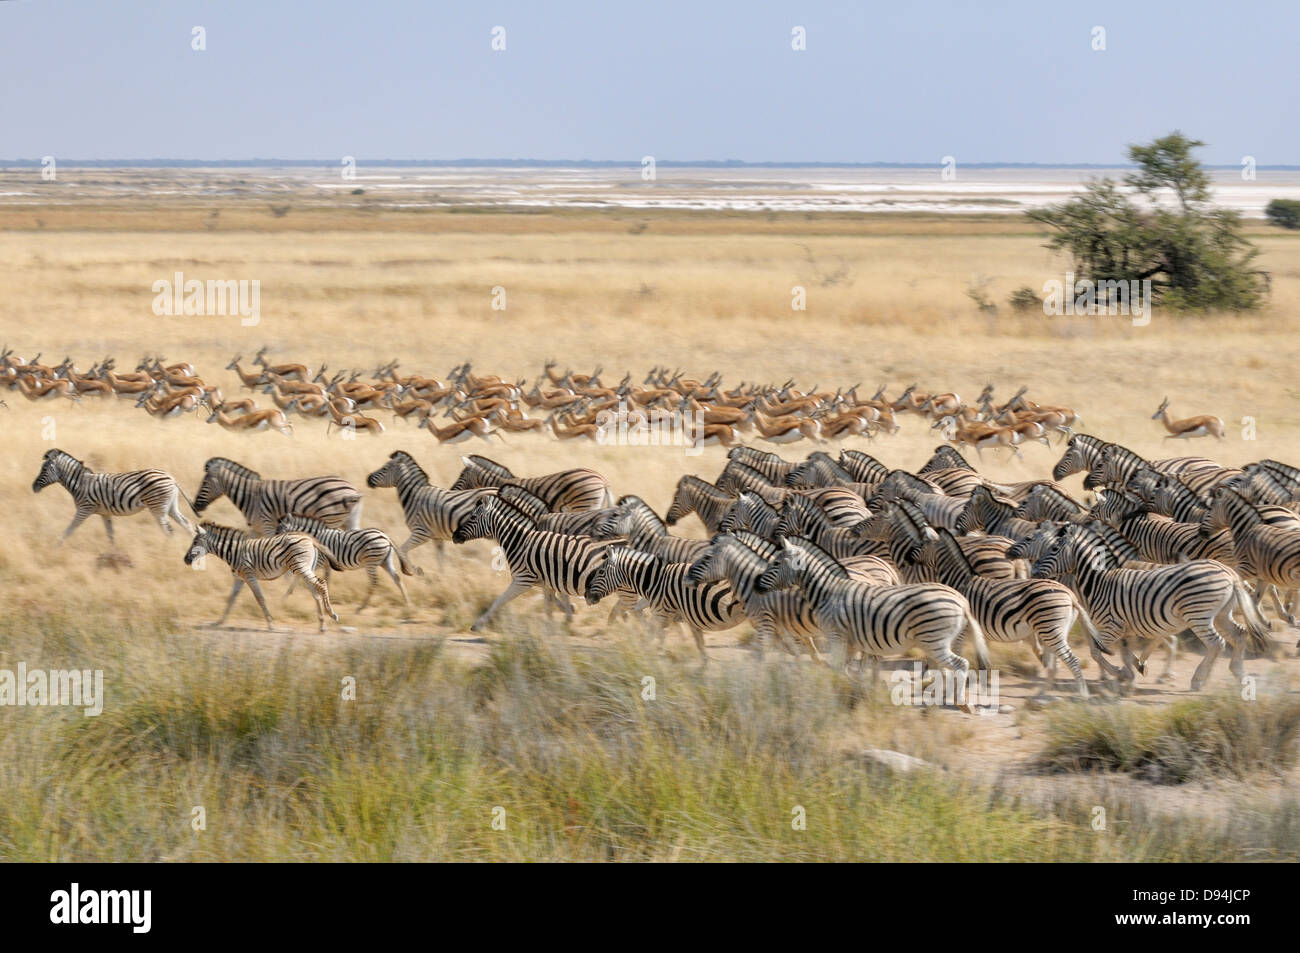 Burchell's Zebra, Equus quagga burchellii and Springbok, Antidorcas marsupialis, photographed in Etosha National - Stock Image